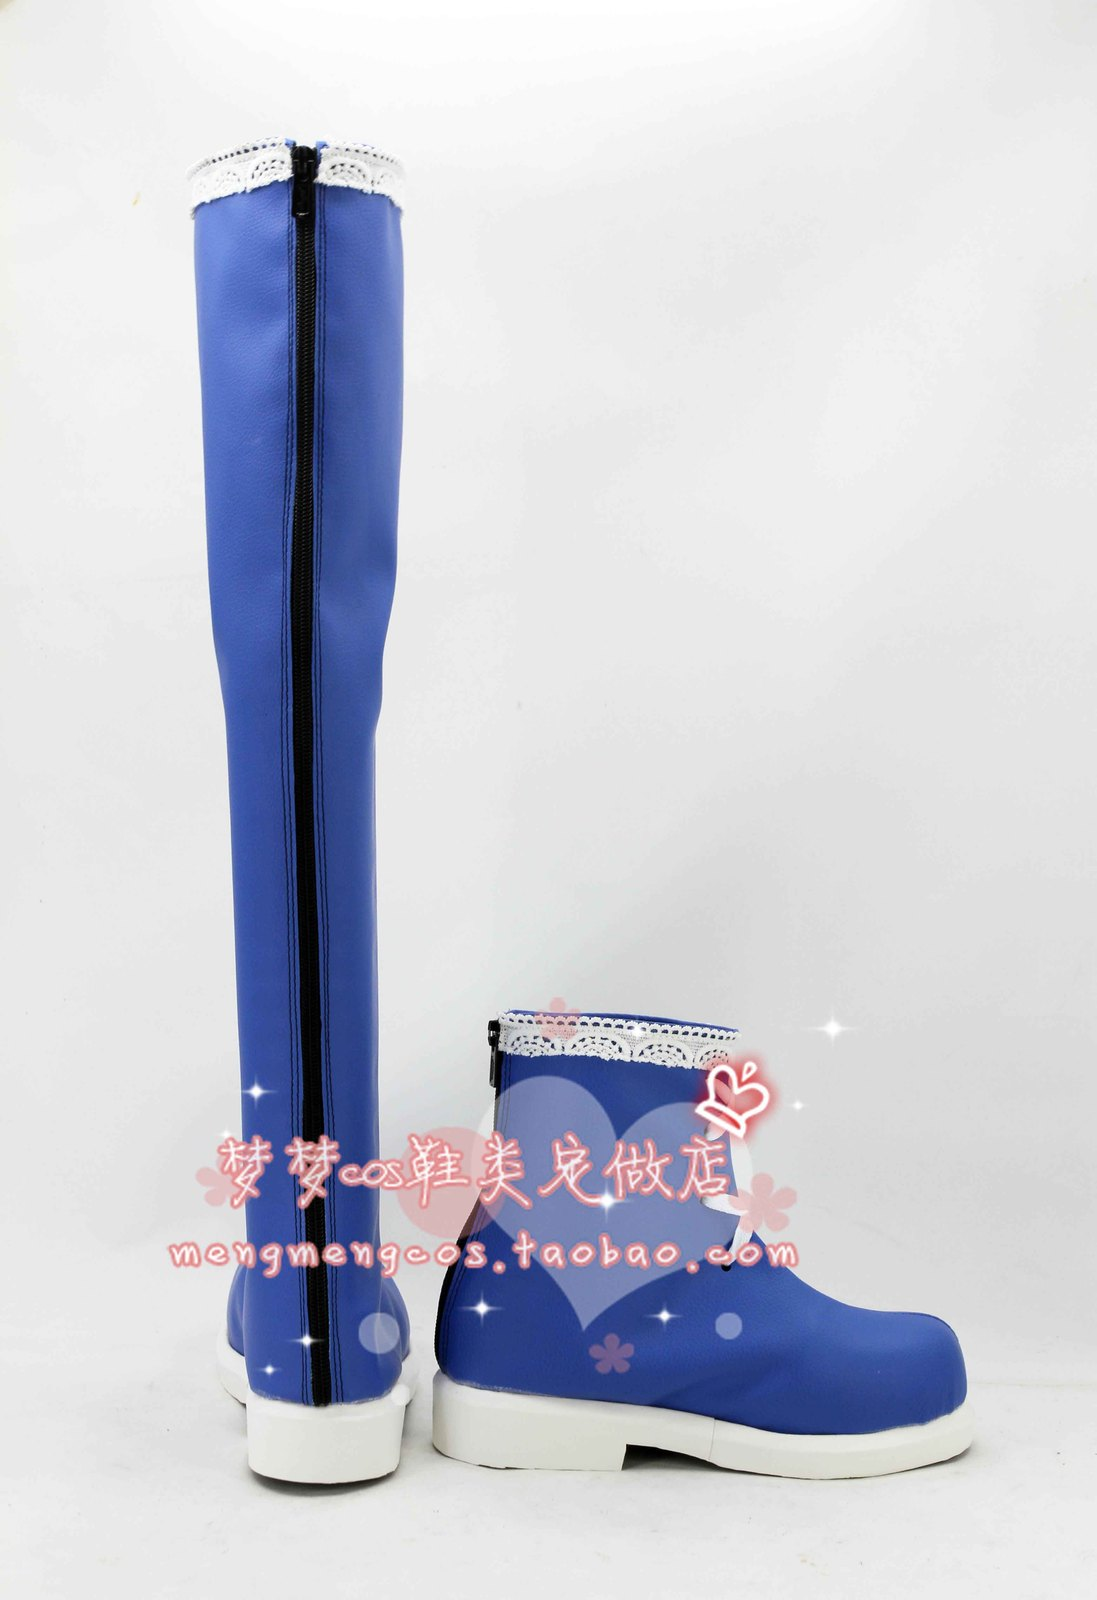 VOCALOID SNOW MIKU Hatsune Miku blue  cos Cosplay Shoes boots shoe boot #AT25